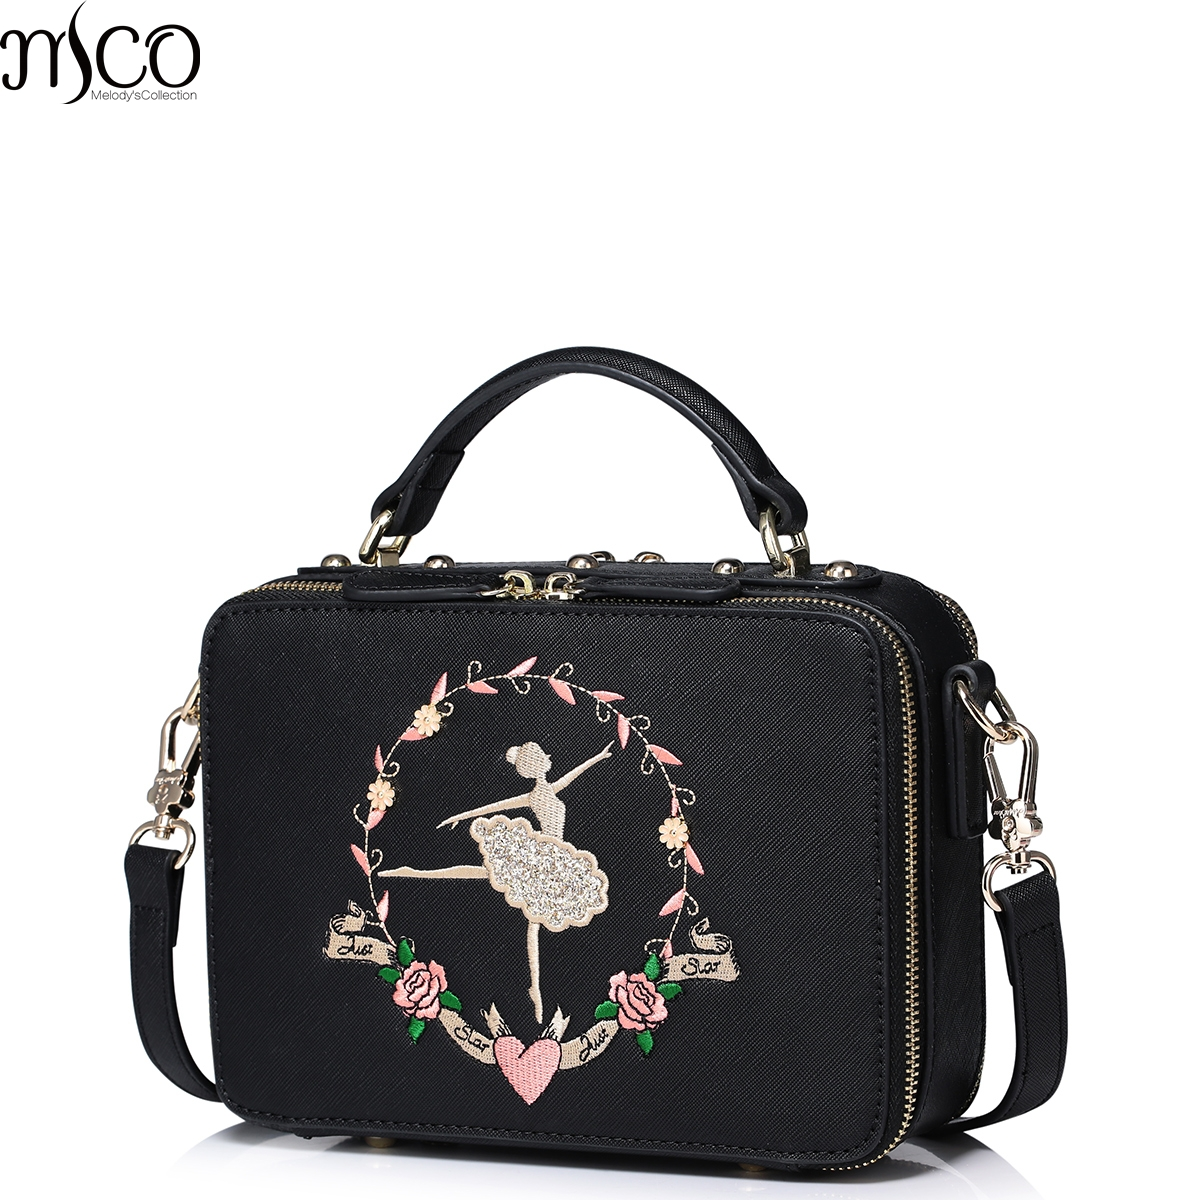 2017 Summer Luxury Flower Ballet Girl Embroidery Tote Handbags For Women PU Leather Shoulder Bag Double